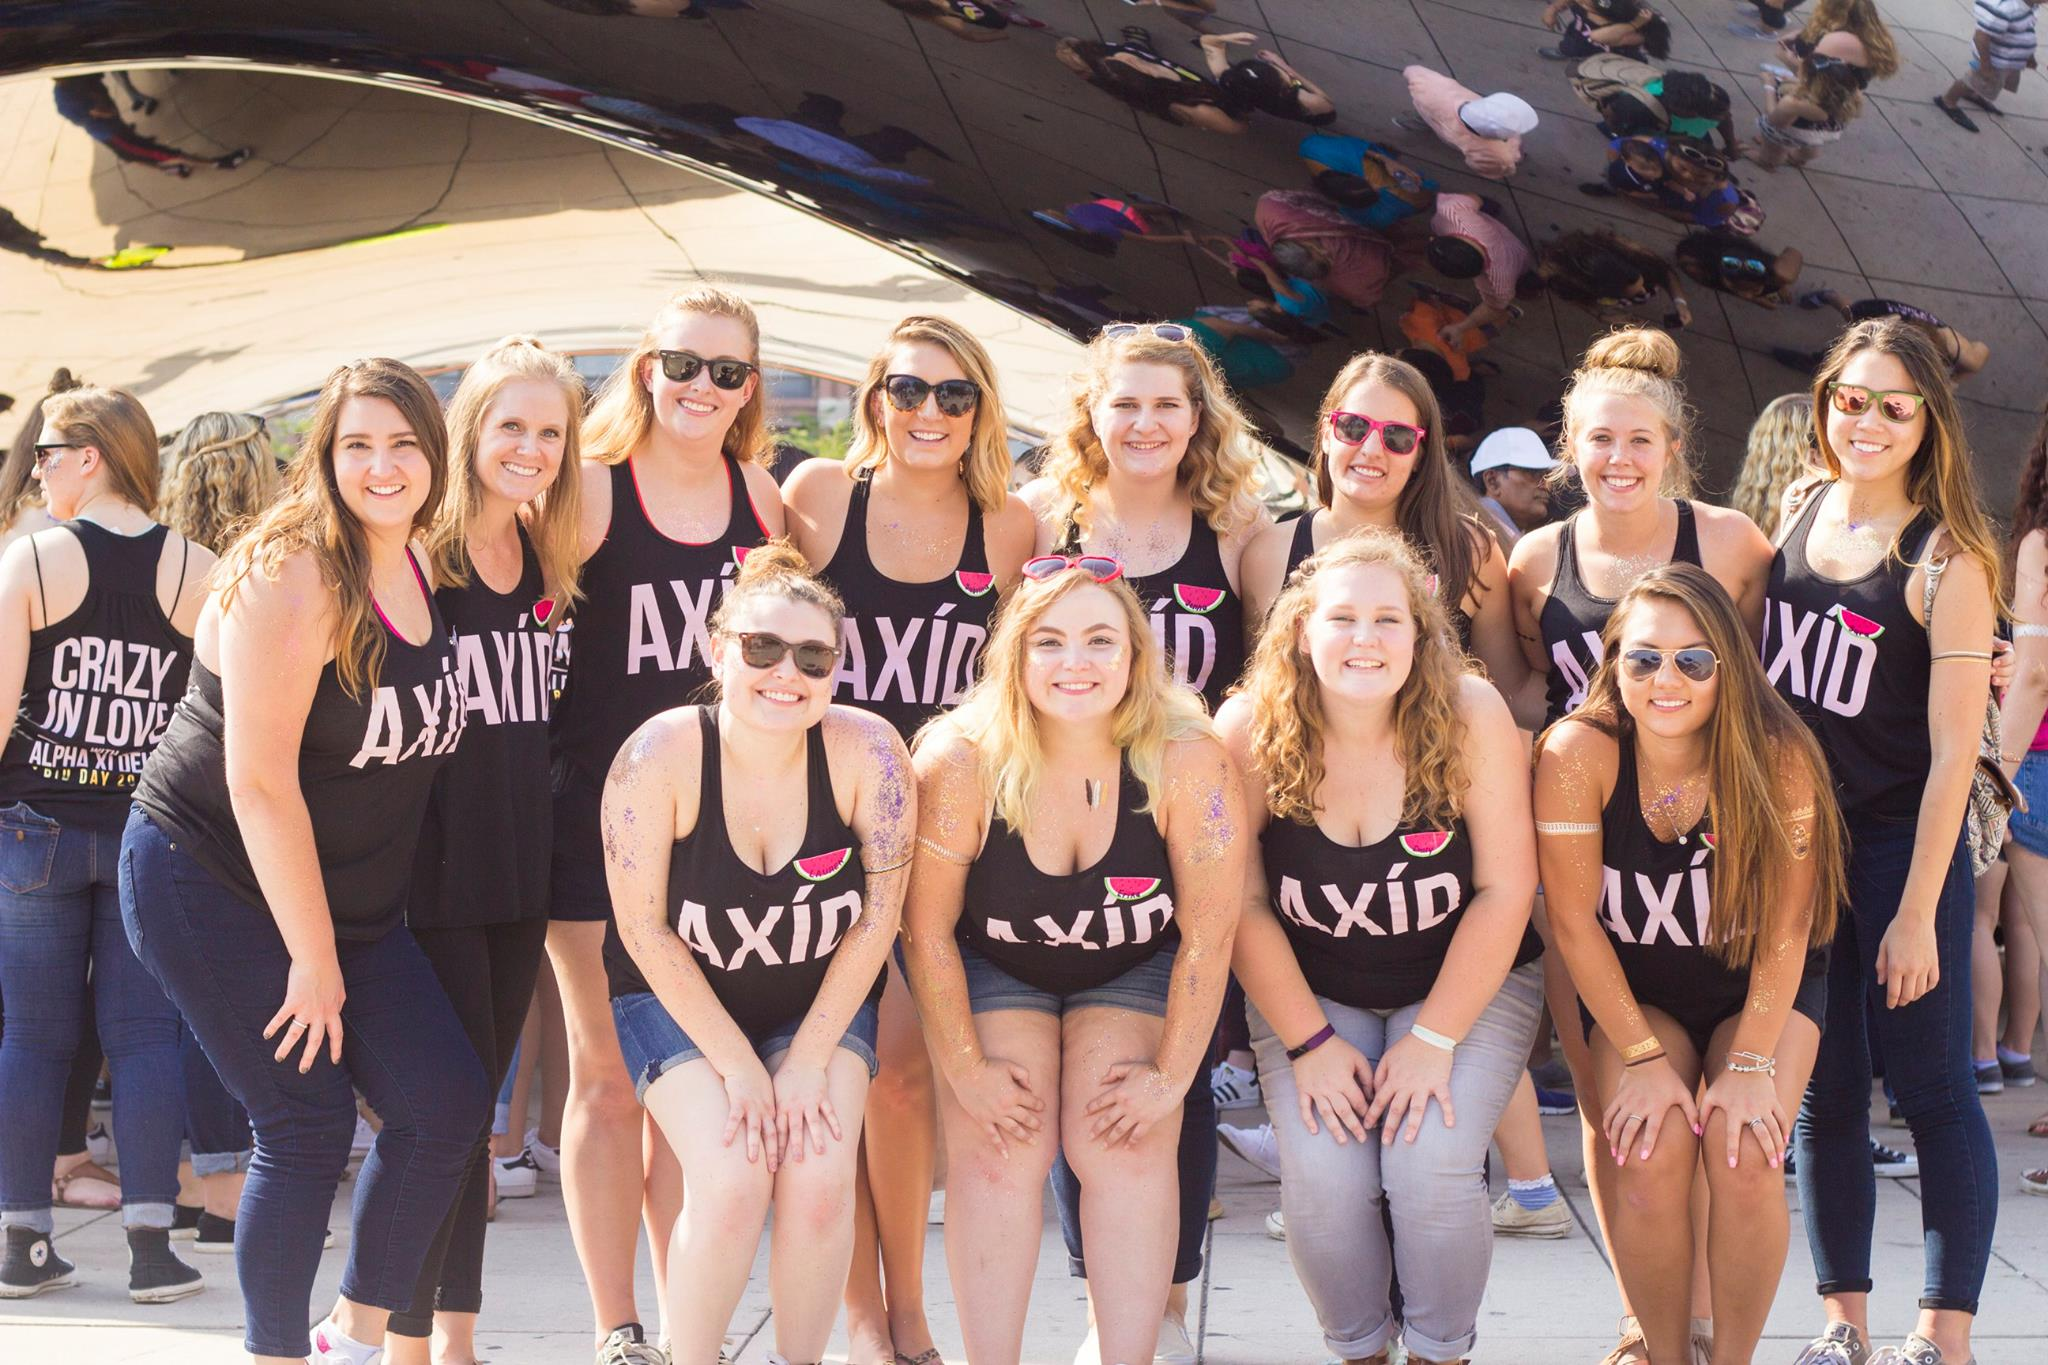 Bid Day 2016 - Crazy In Love with AXiD